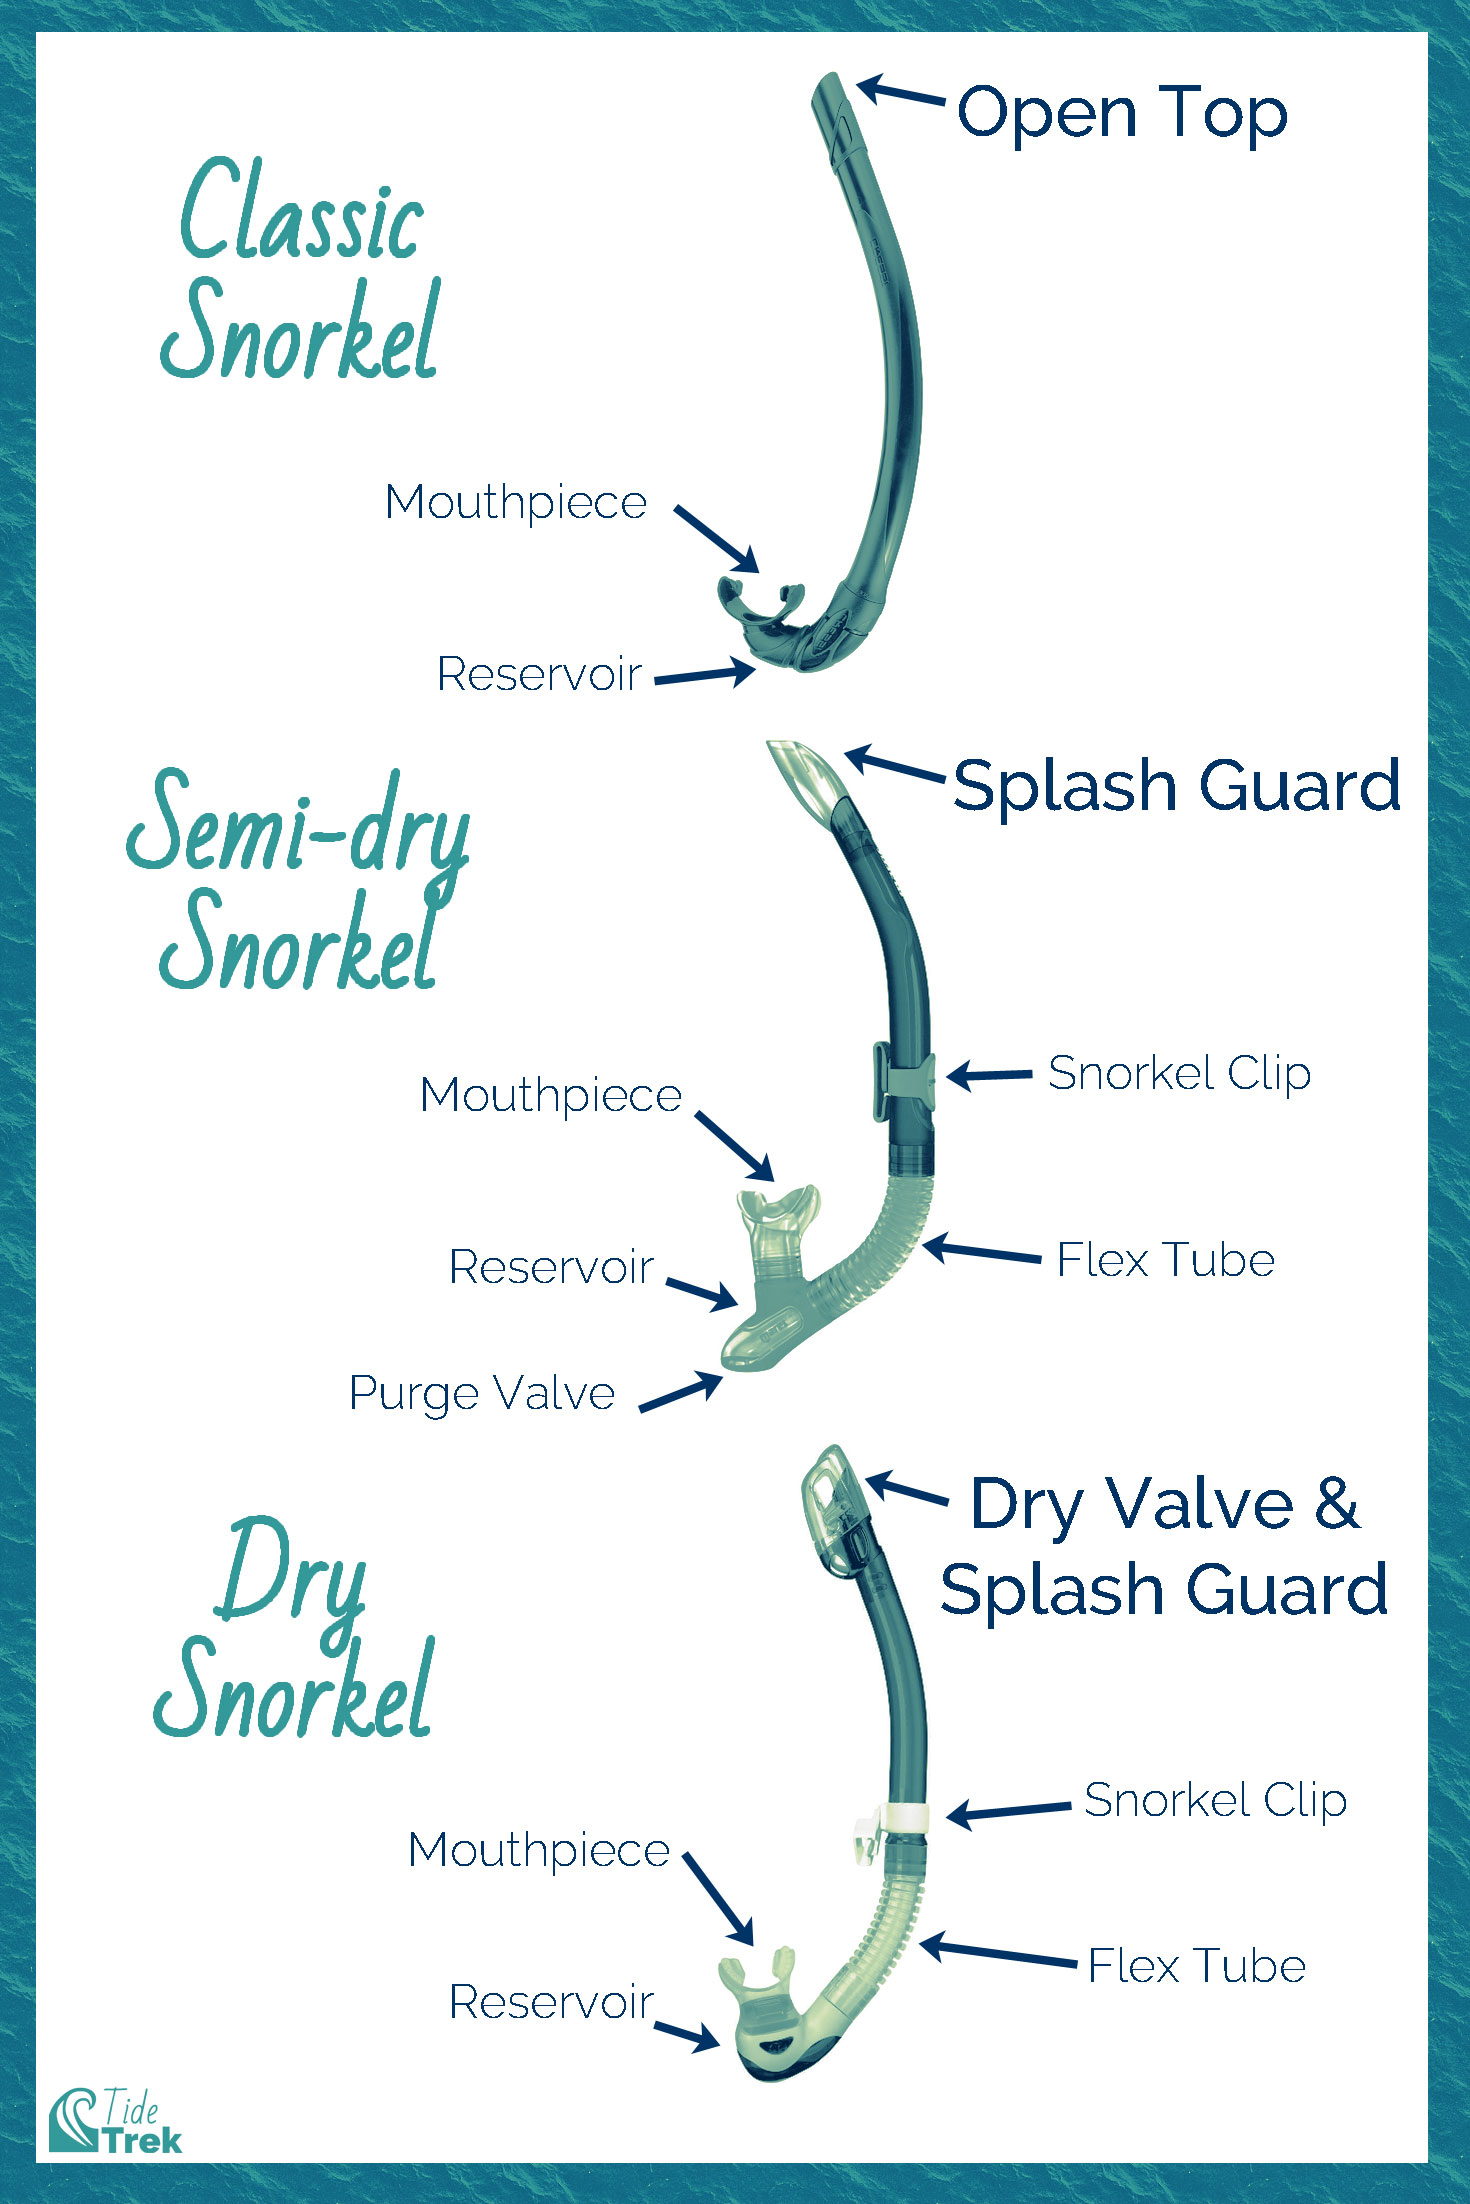 Diagram illustrating the key parts of a snorkel, and the three types of snorkels: classic, semi-dry, and dry snorkels